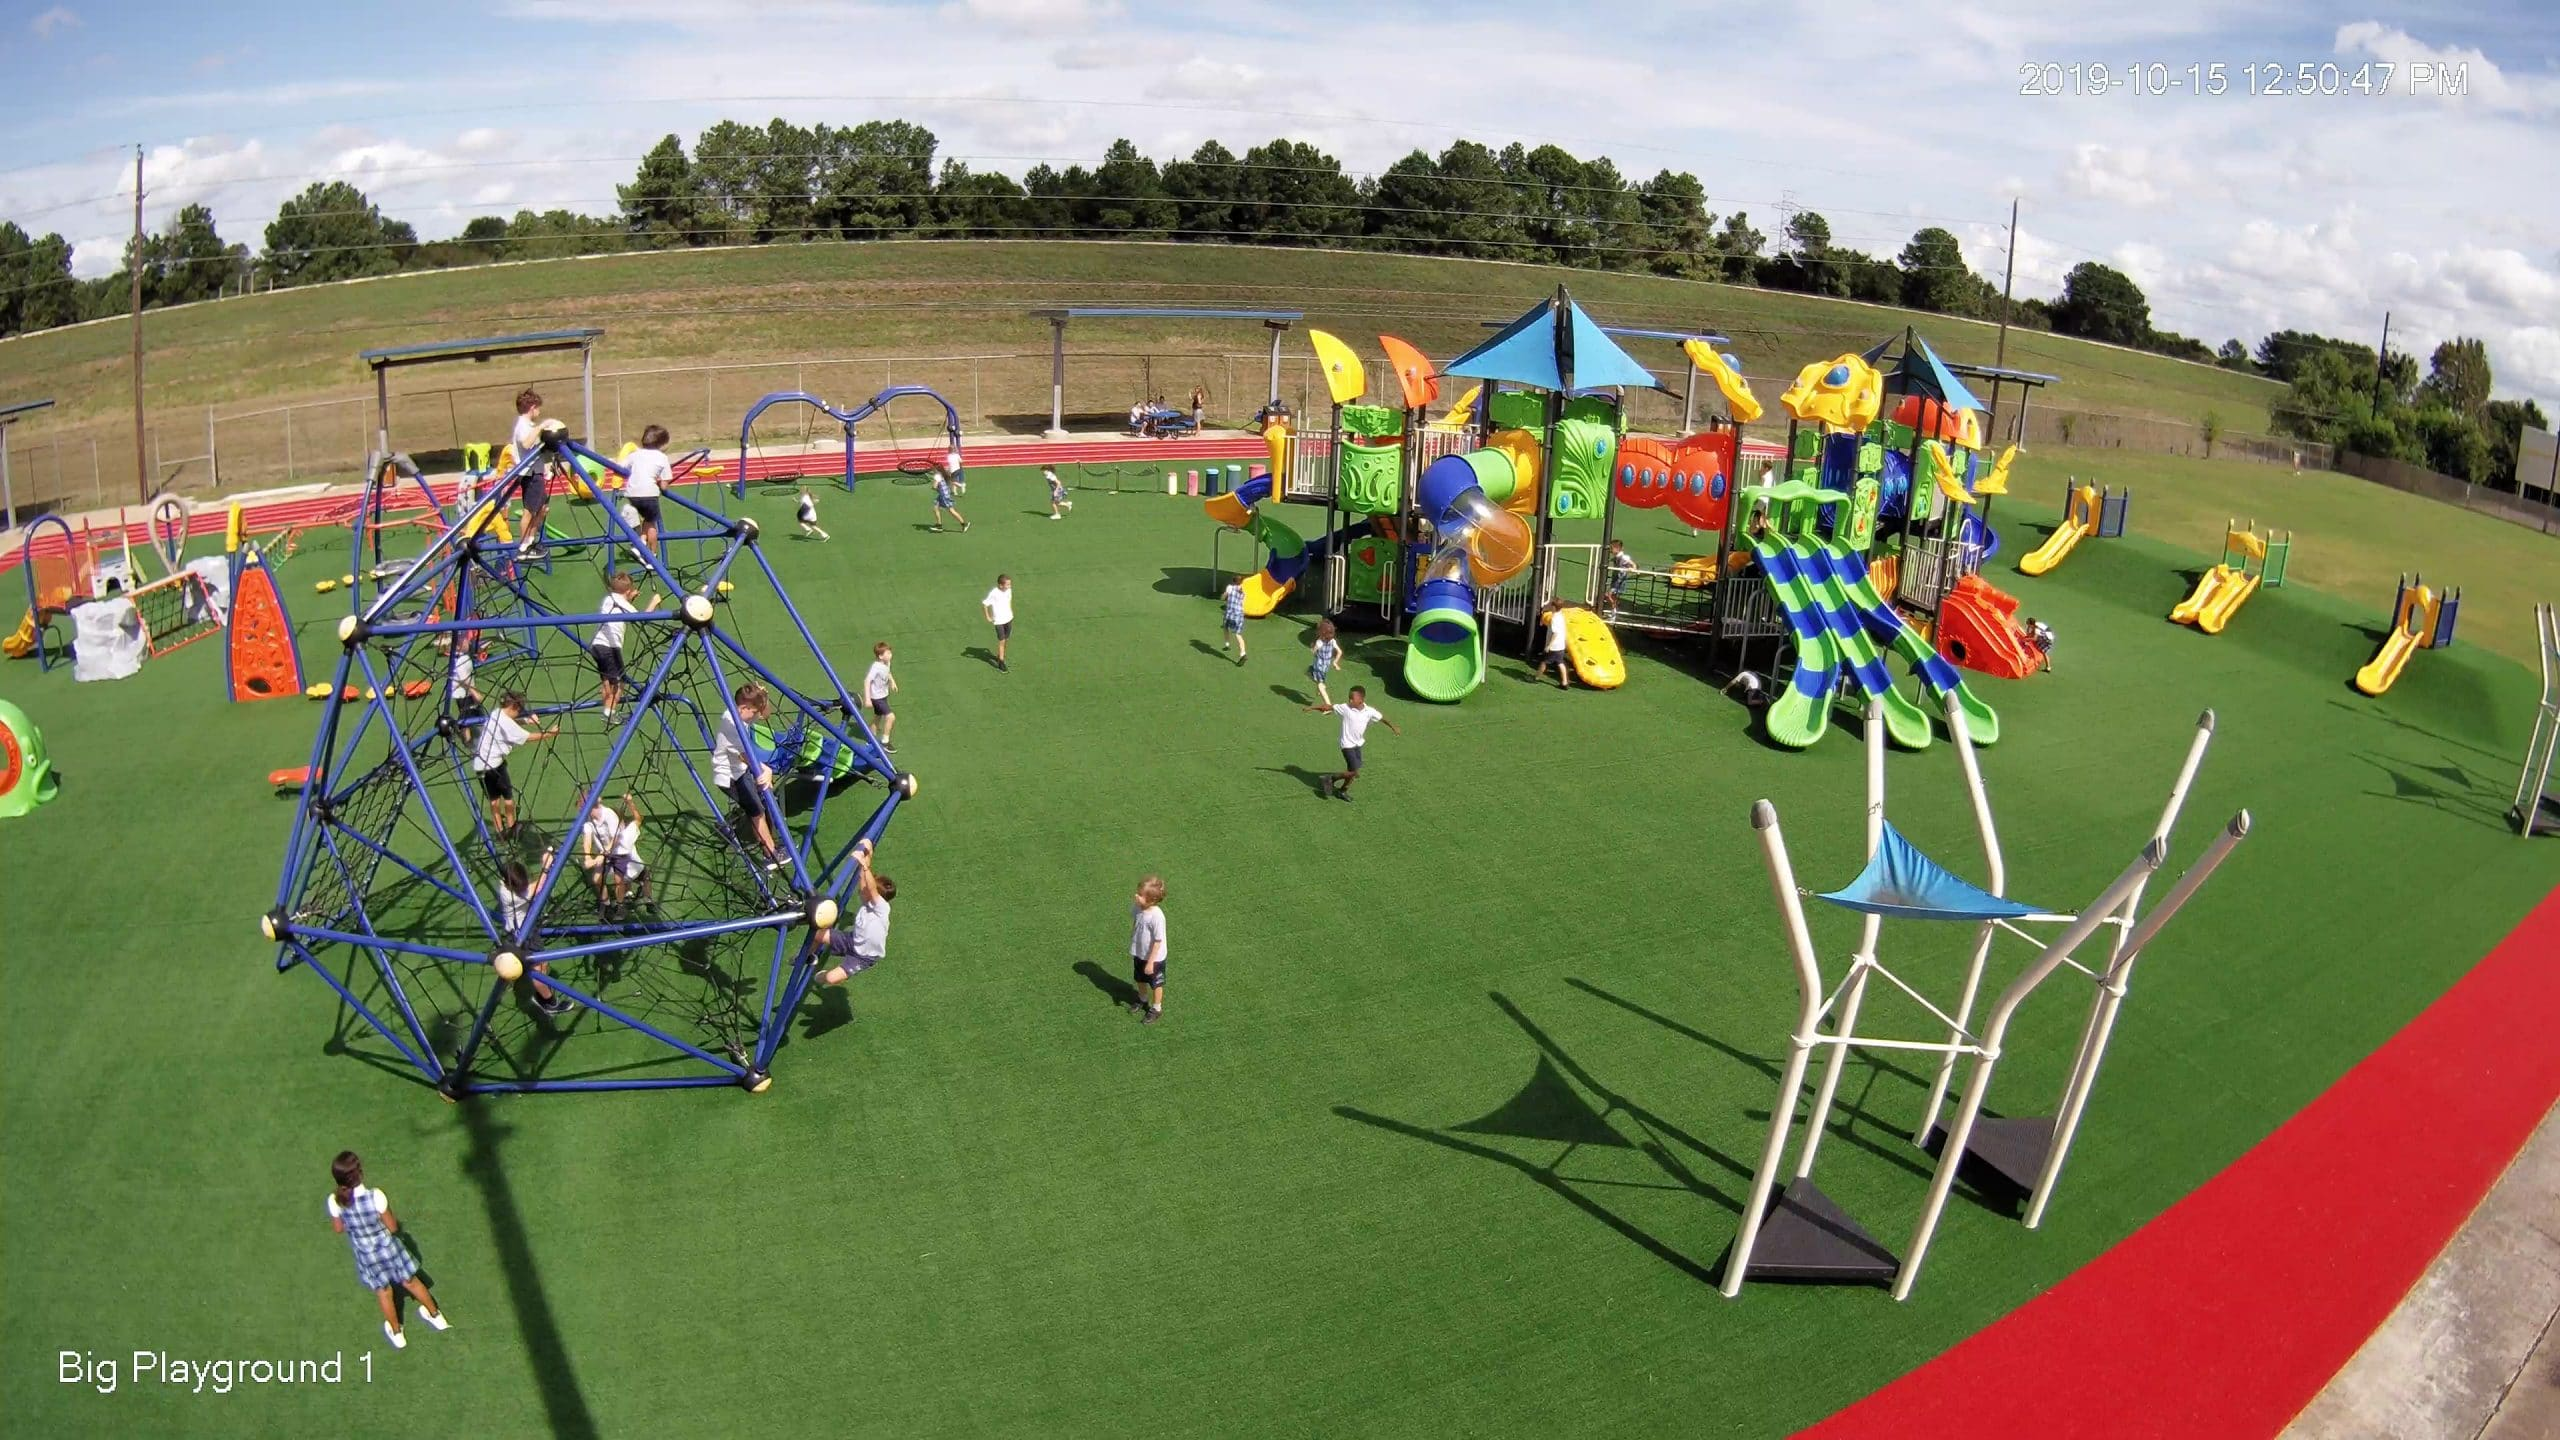 LIH – Child Care Big Playground